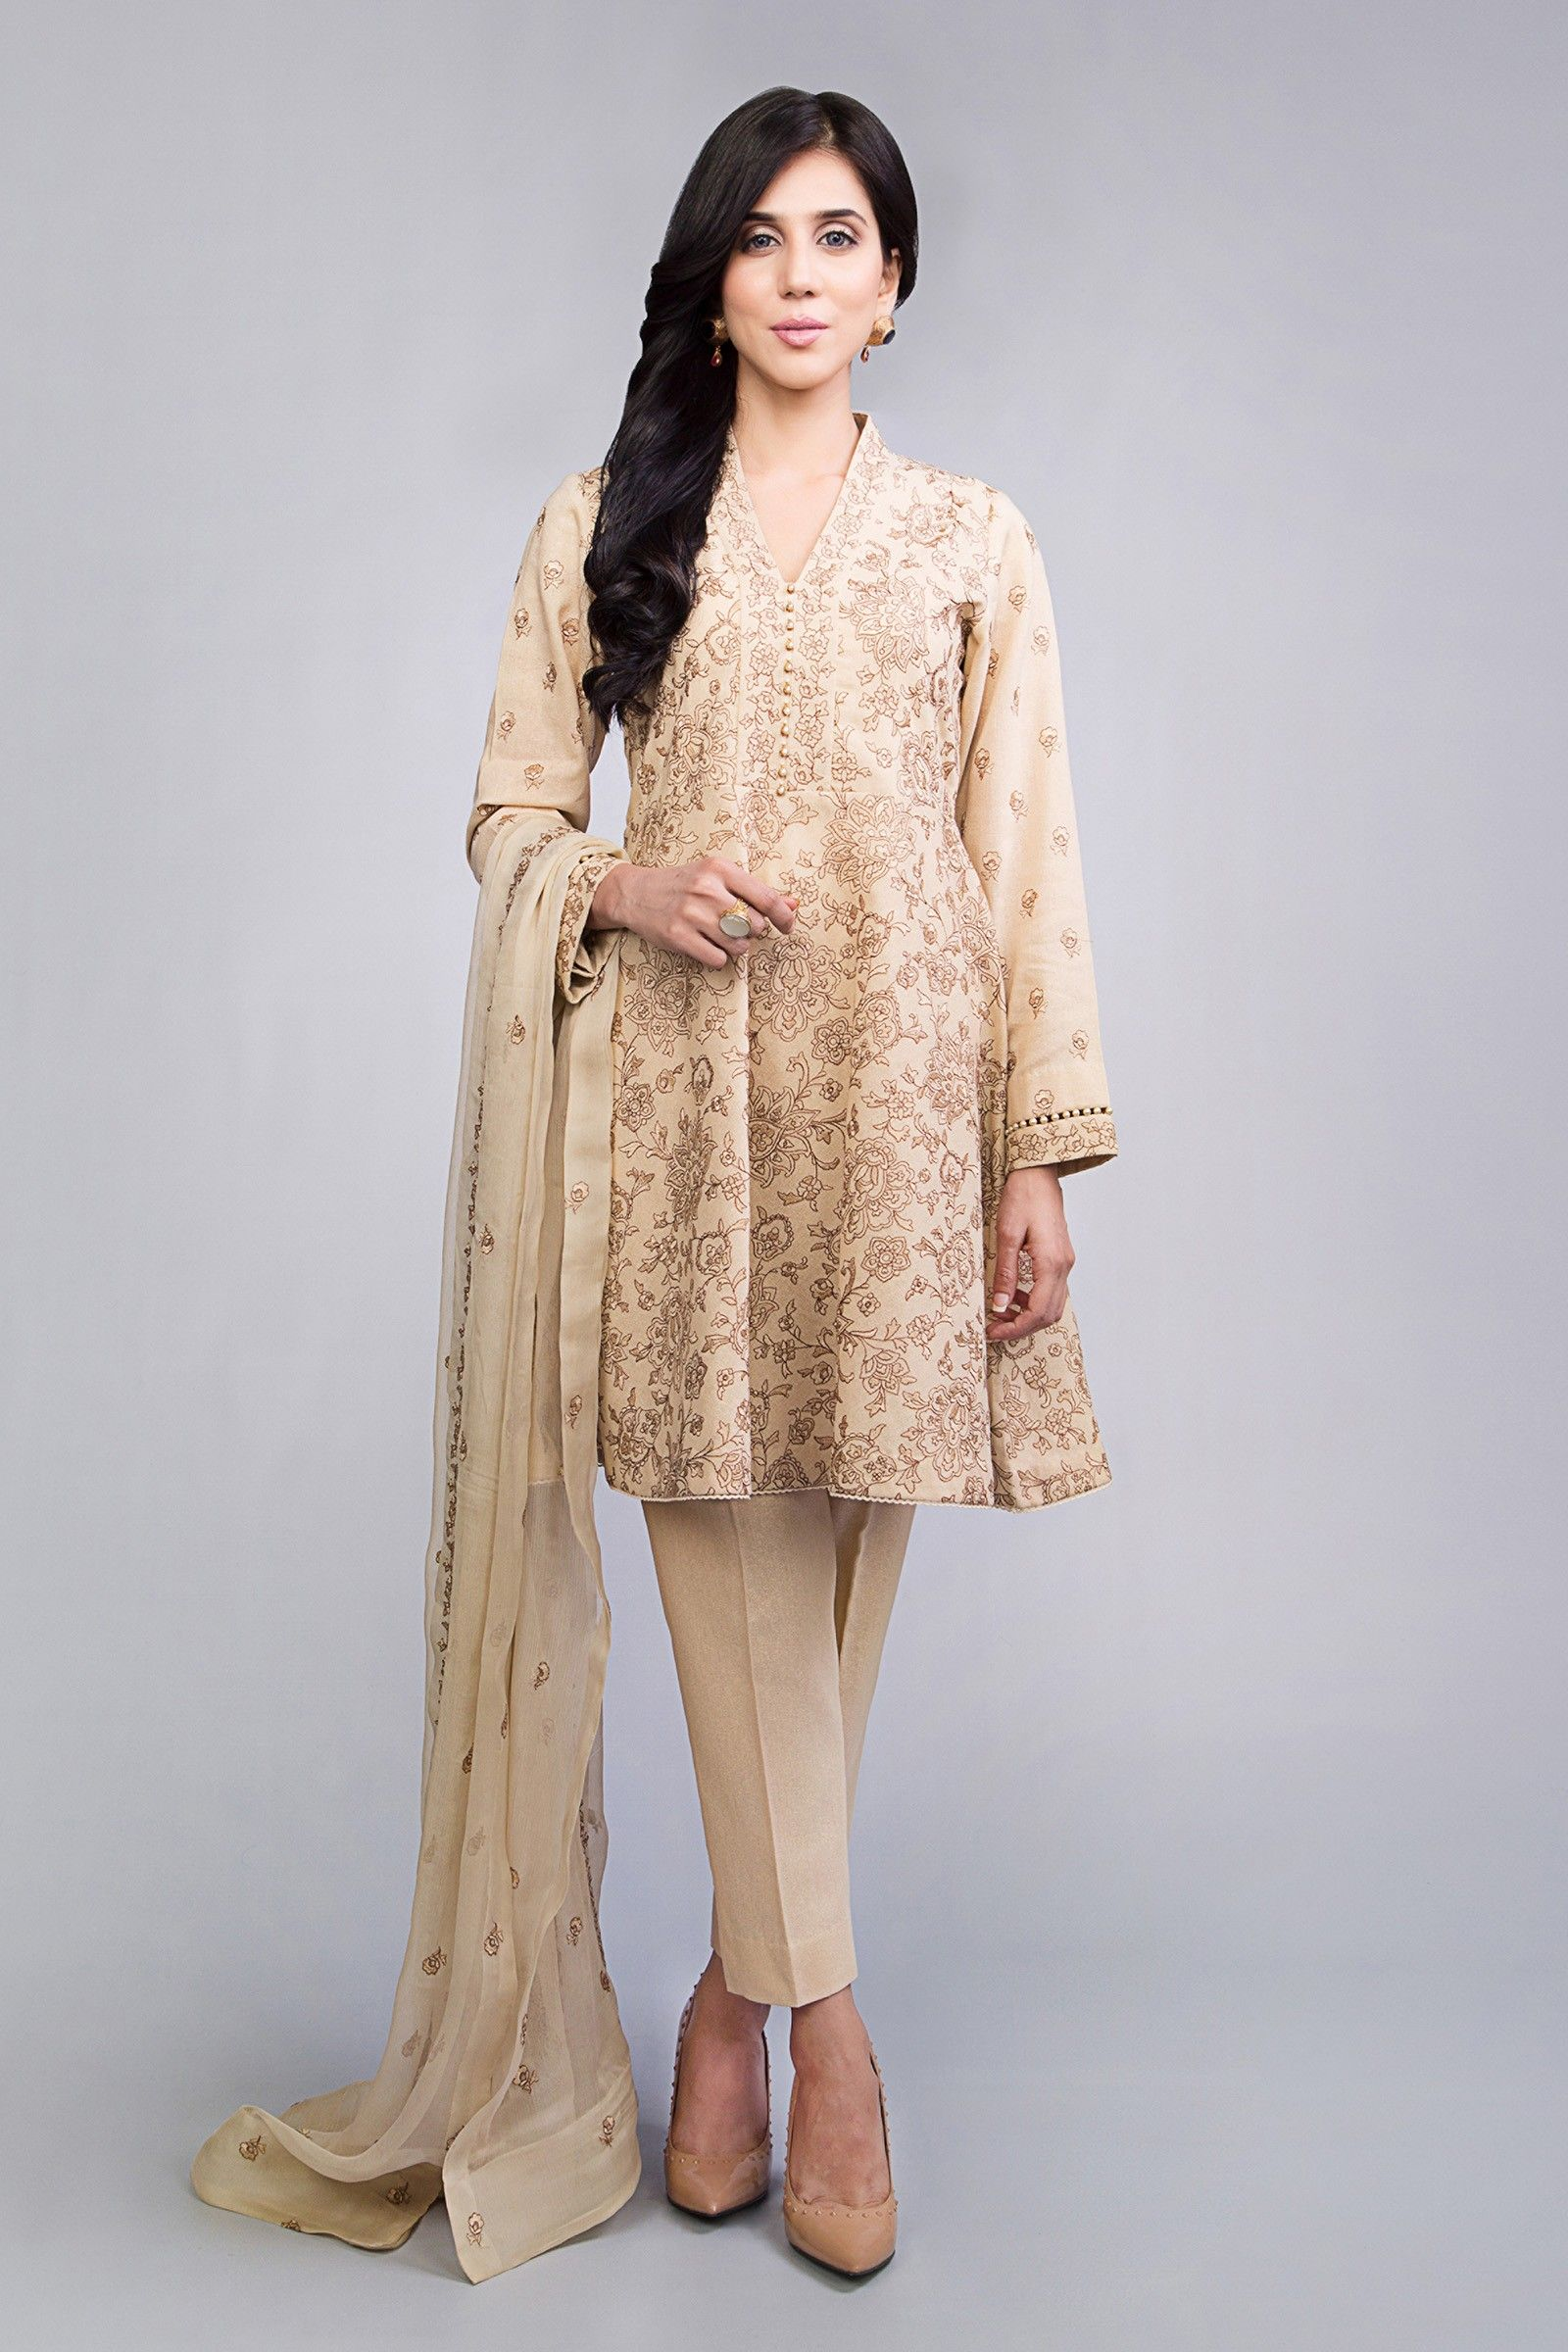 19365129a7 Stylish Ready to wear cream printed 3 piece suit by Bareeze winter  collection 2019#springcollection #spring #readytowear #pretwear #unstitched  #online ...